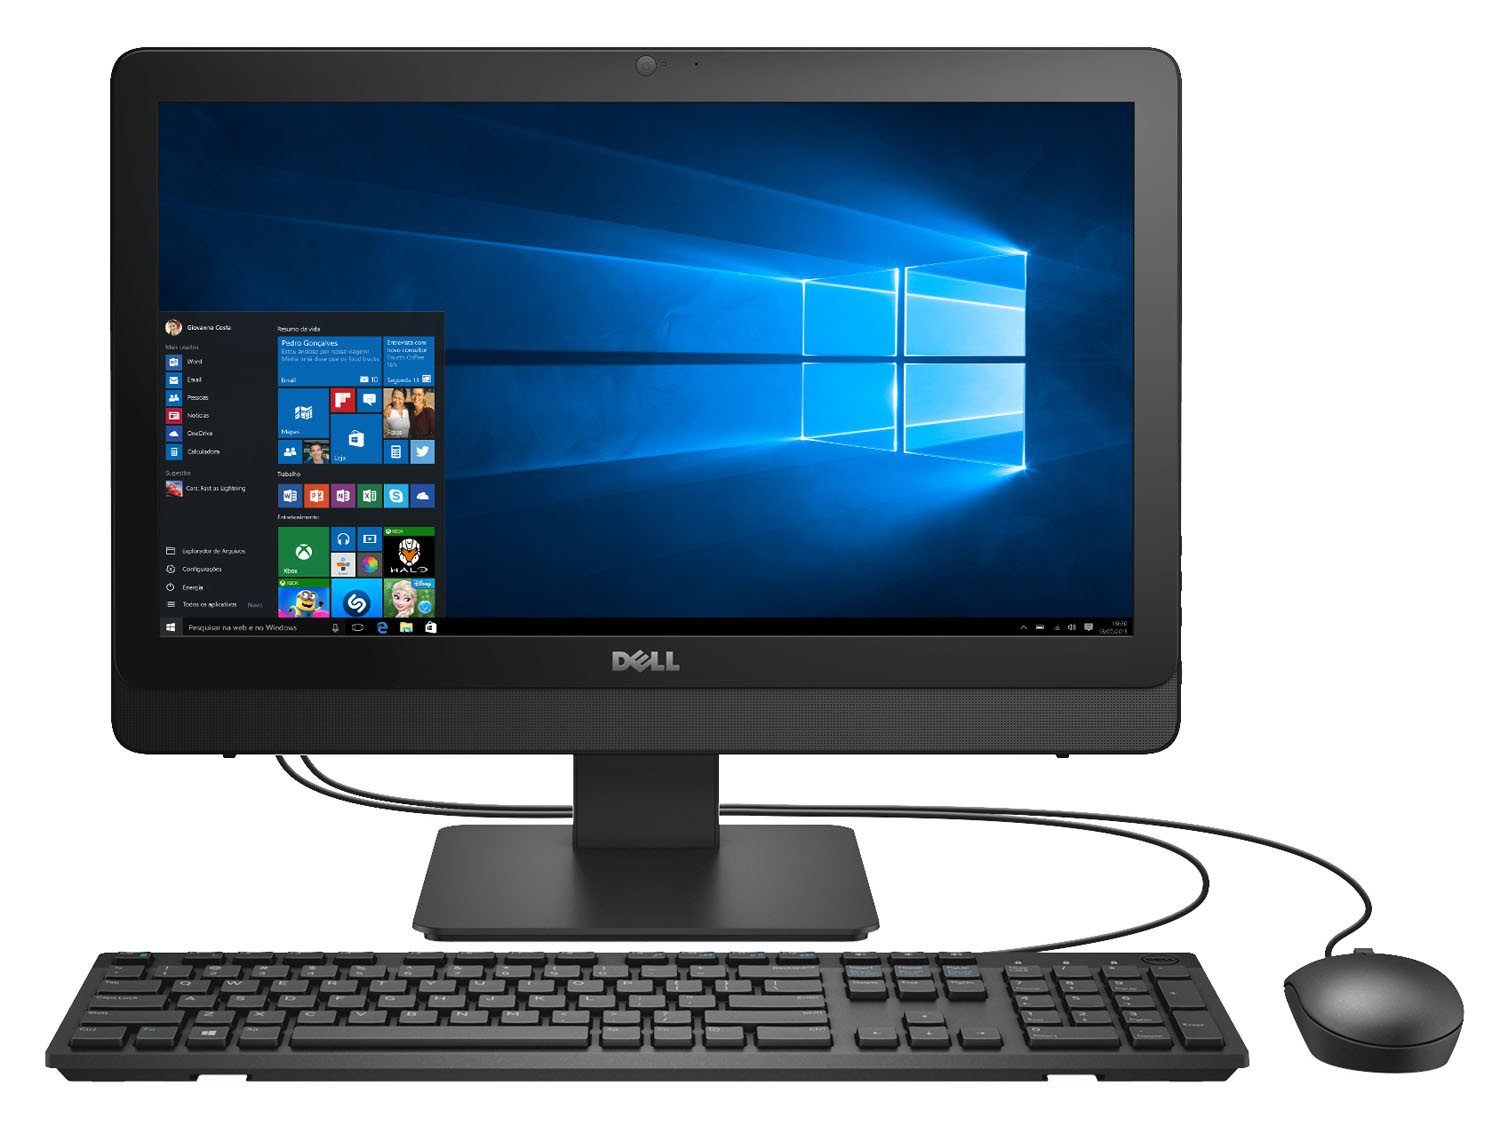 How to Use Dell Coupons There are plenty of promotion codes for discounted Dell computers and accessories. Deals can include 25% off a specific product like laptops, to a .